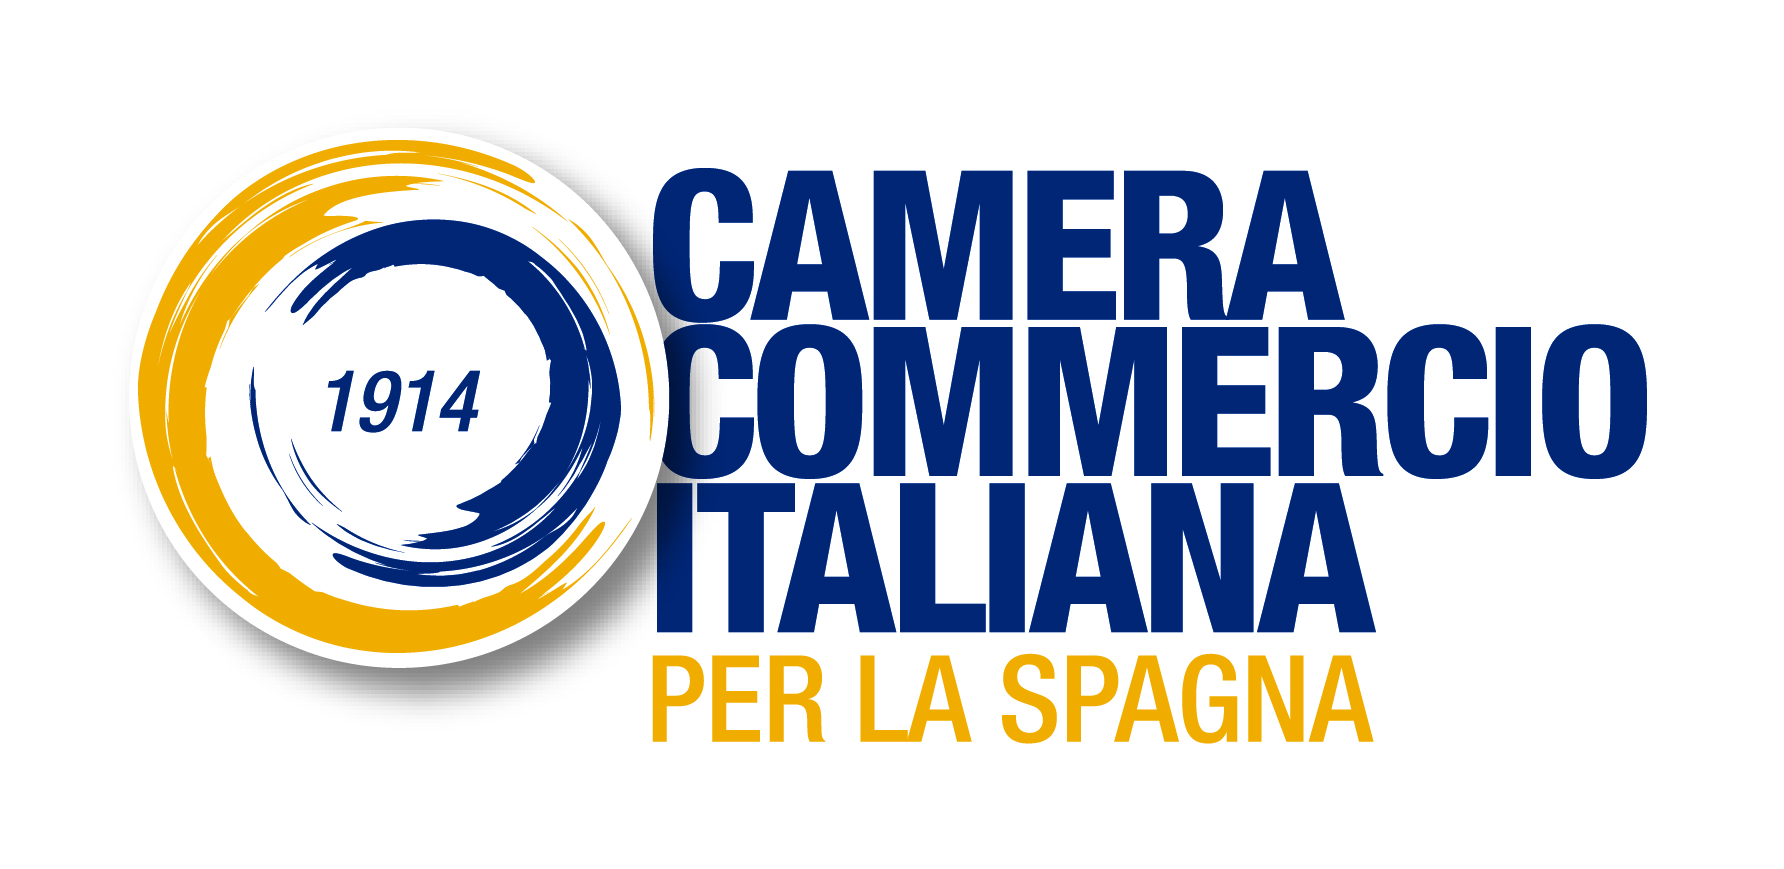 Camera di Commercio e Industria Italiana per la Spagna (CCIS)